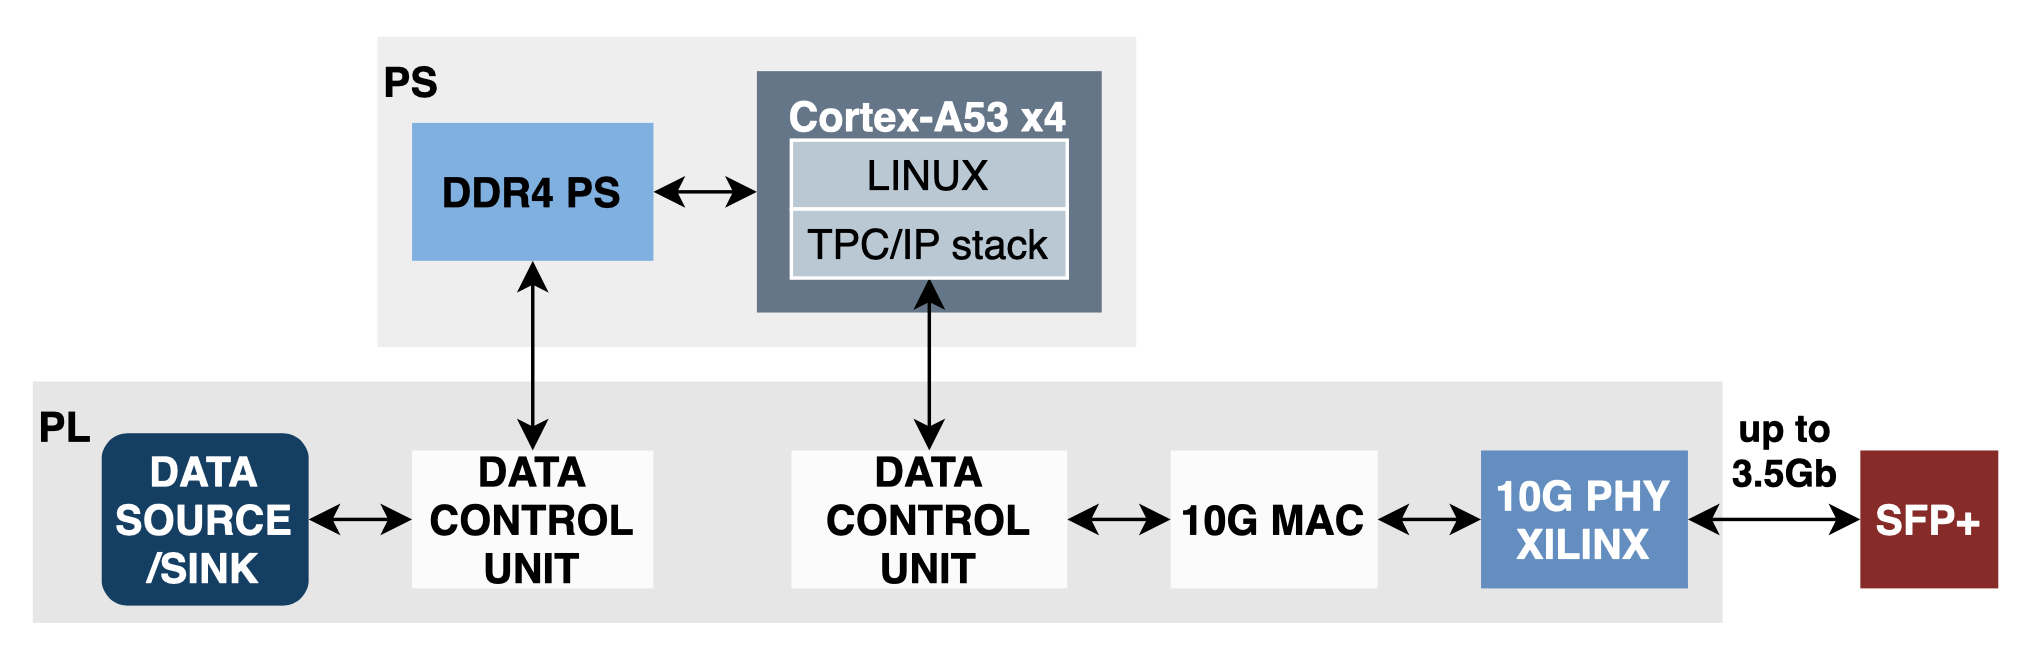 zynqus+ linux 10G tcp ip ddr4